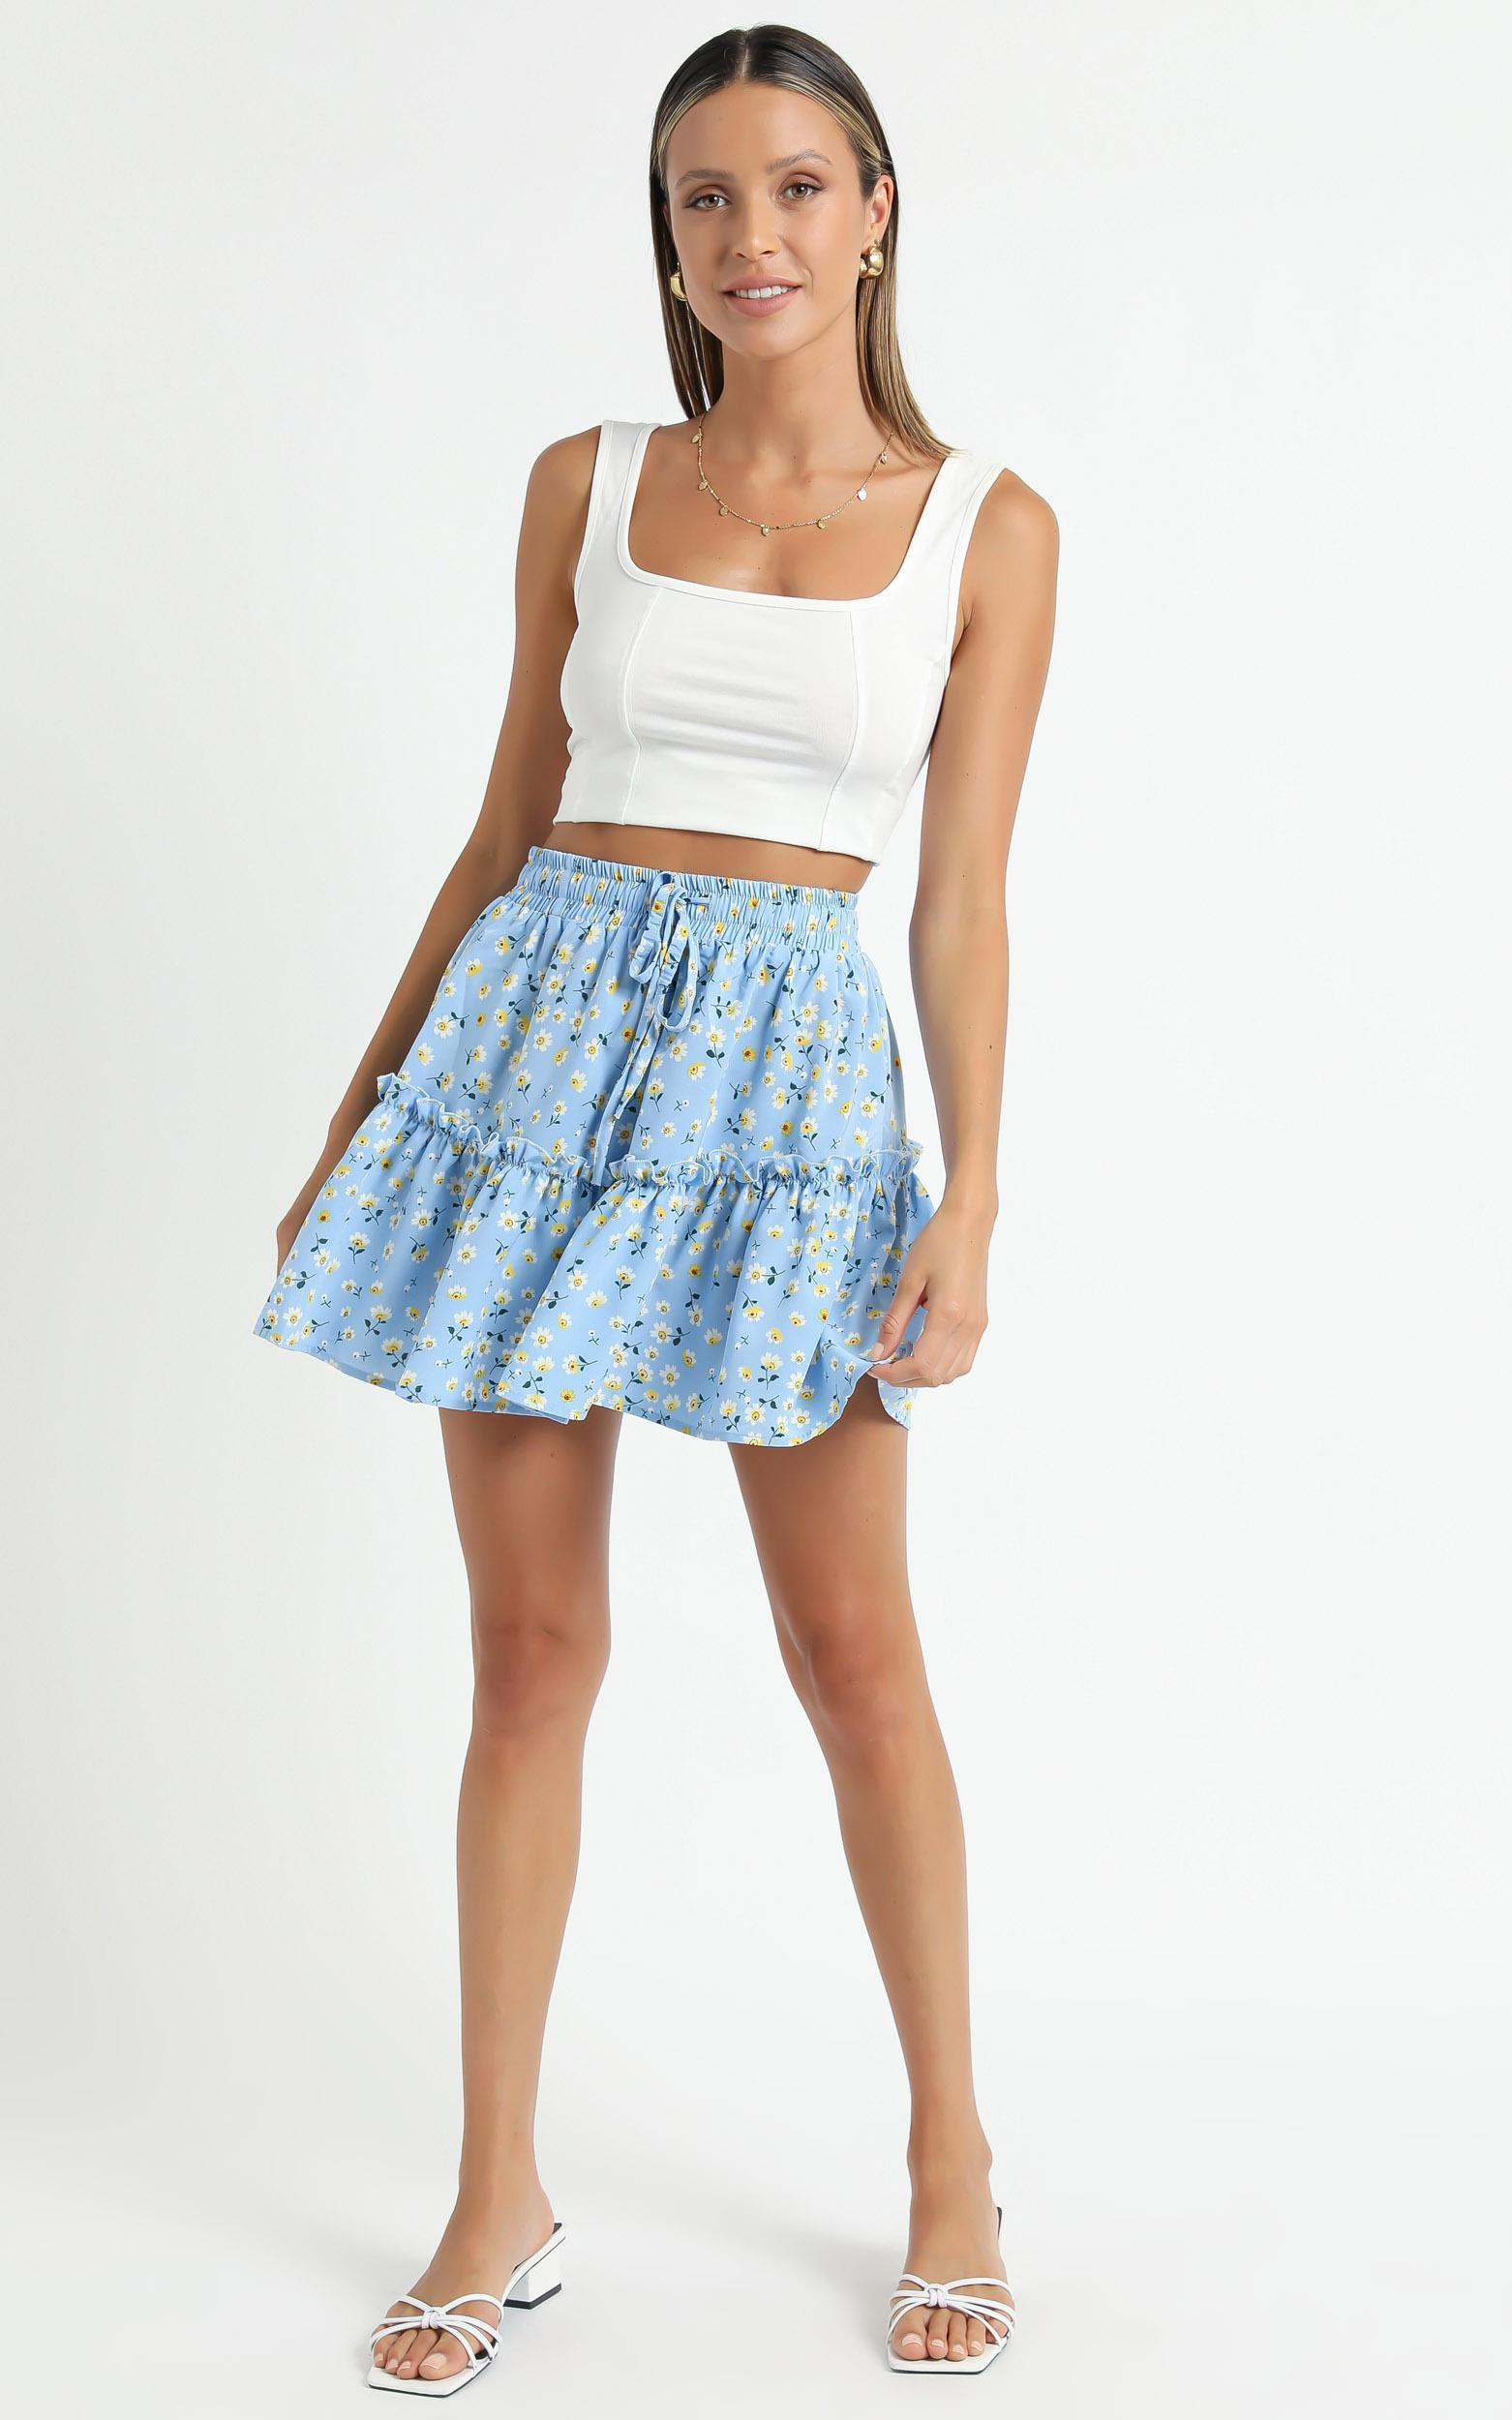 Tennessee Skirt in Blue Floral - 6 (XS), Blue, hi-res image number null